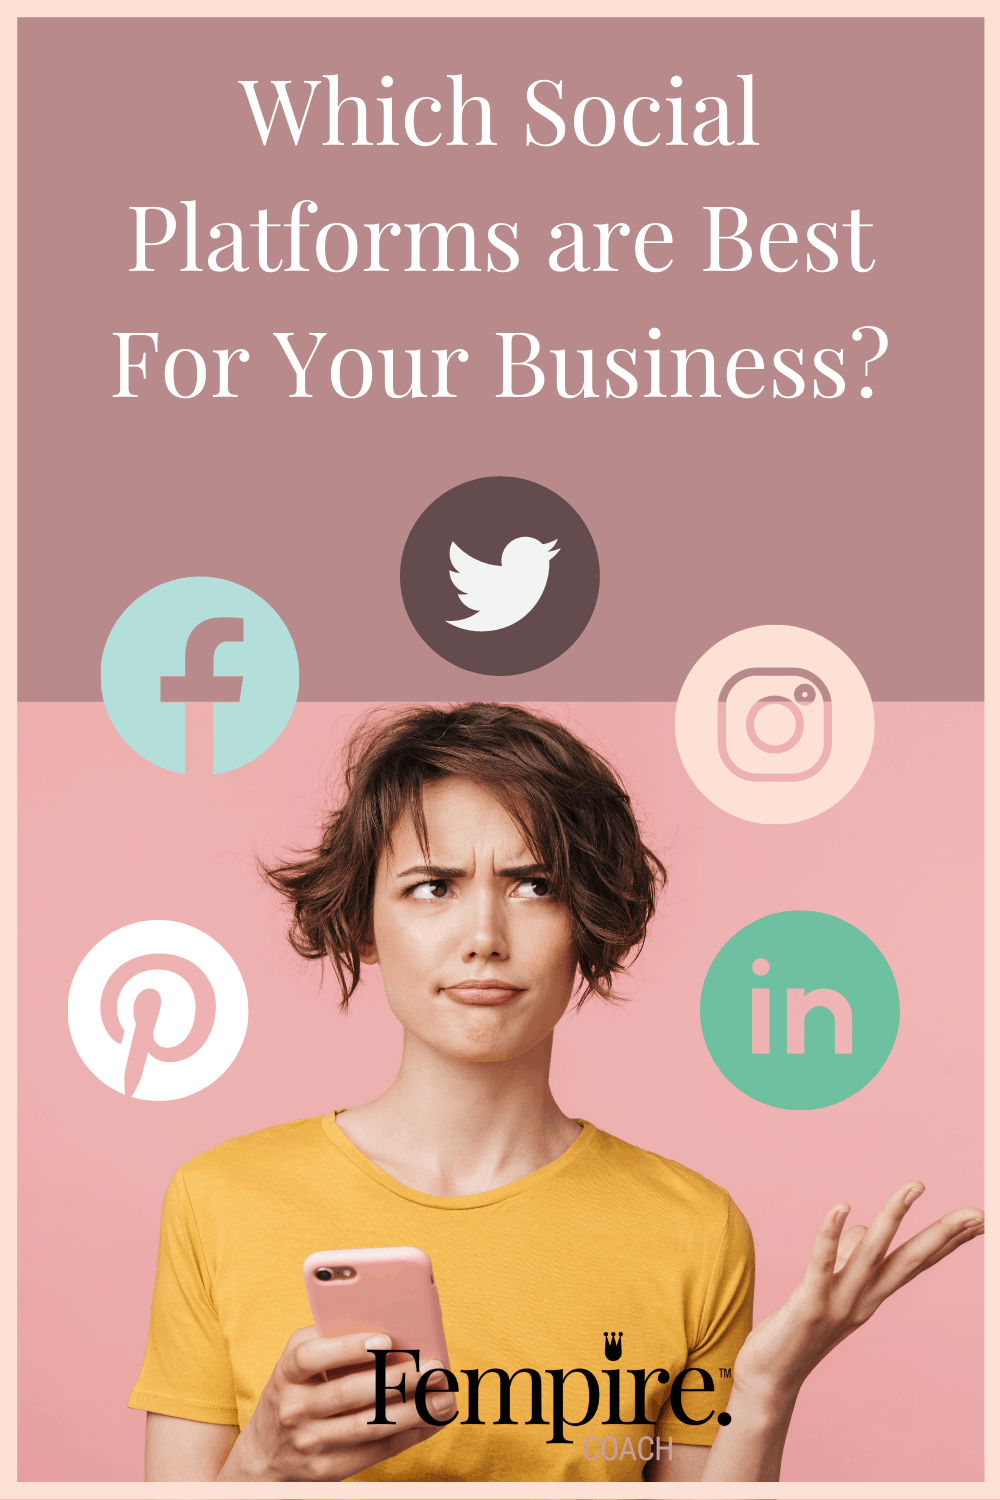 Facebook, Instagram, LinkedIn, Twitter, Pinterest, SnapChat, TikTok, YouTube... the choice of social platforms can be overwhelming! How do you know which ones to focus your time on? In this week's blog I'm sharing all the stats for the 8 biggest social platforms worldwide, so that you can make sure you're focusing your time and energy on the right platforms for your business! #socialmediamarketing #socialmedia #businessmarketing #businesscoach #businesscoachforwomen #fempire #fempirecoach #womensupportingwomen #ladybosses